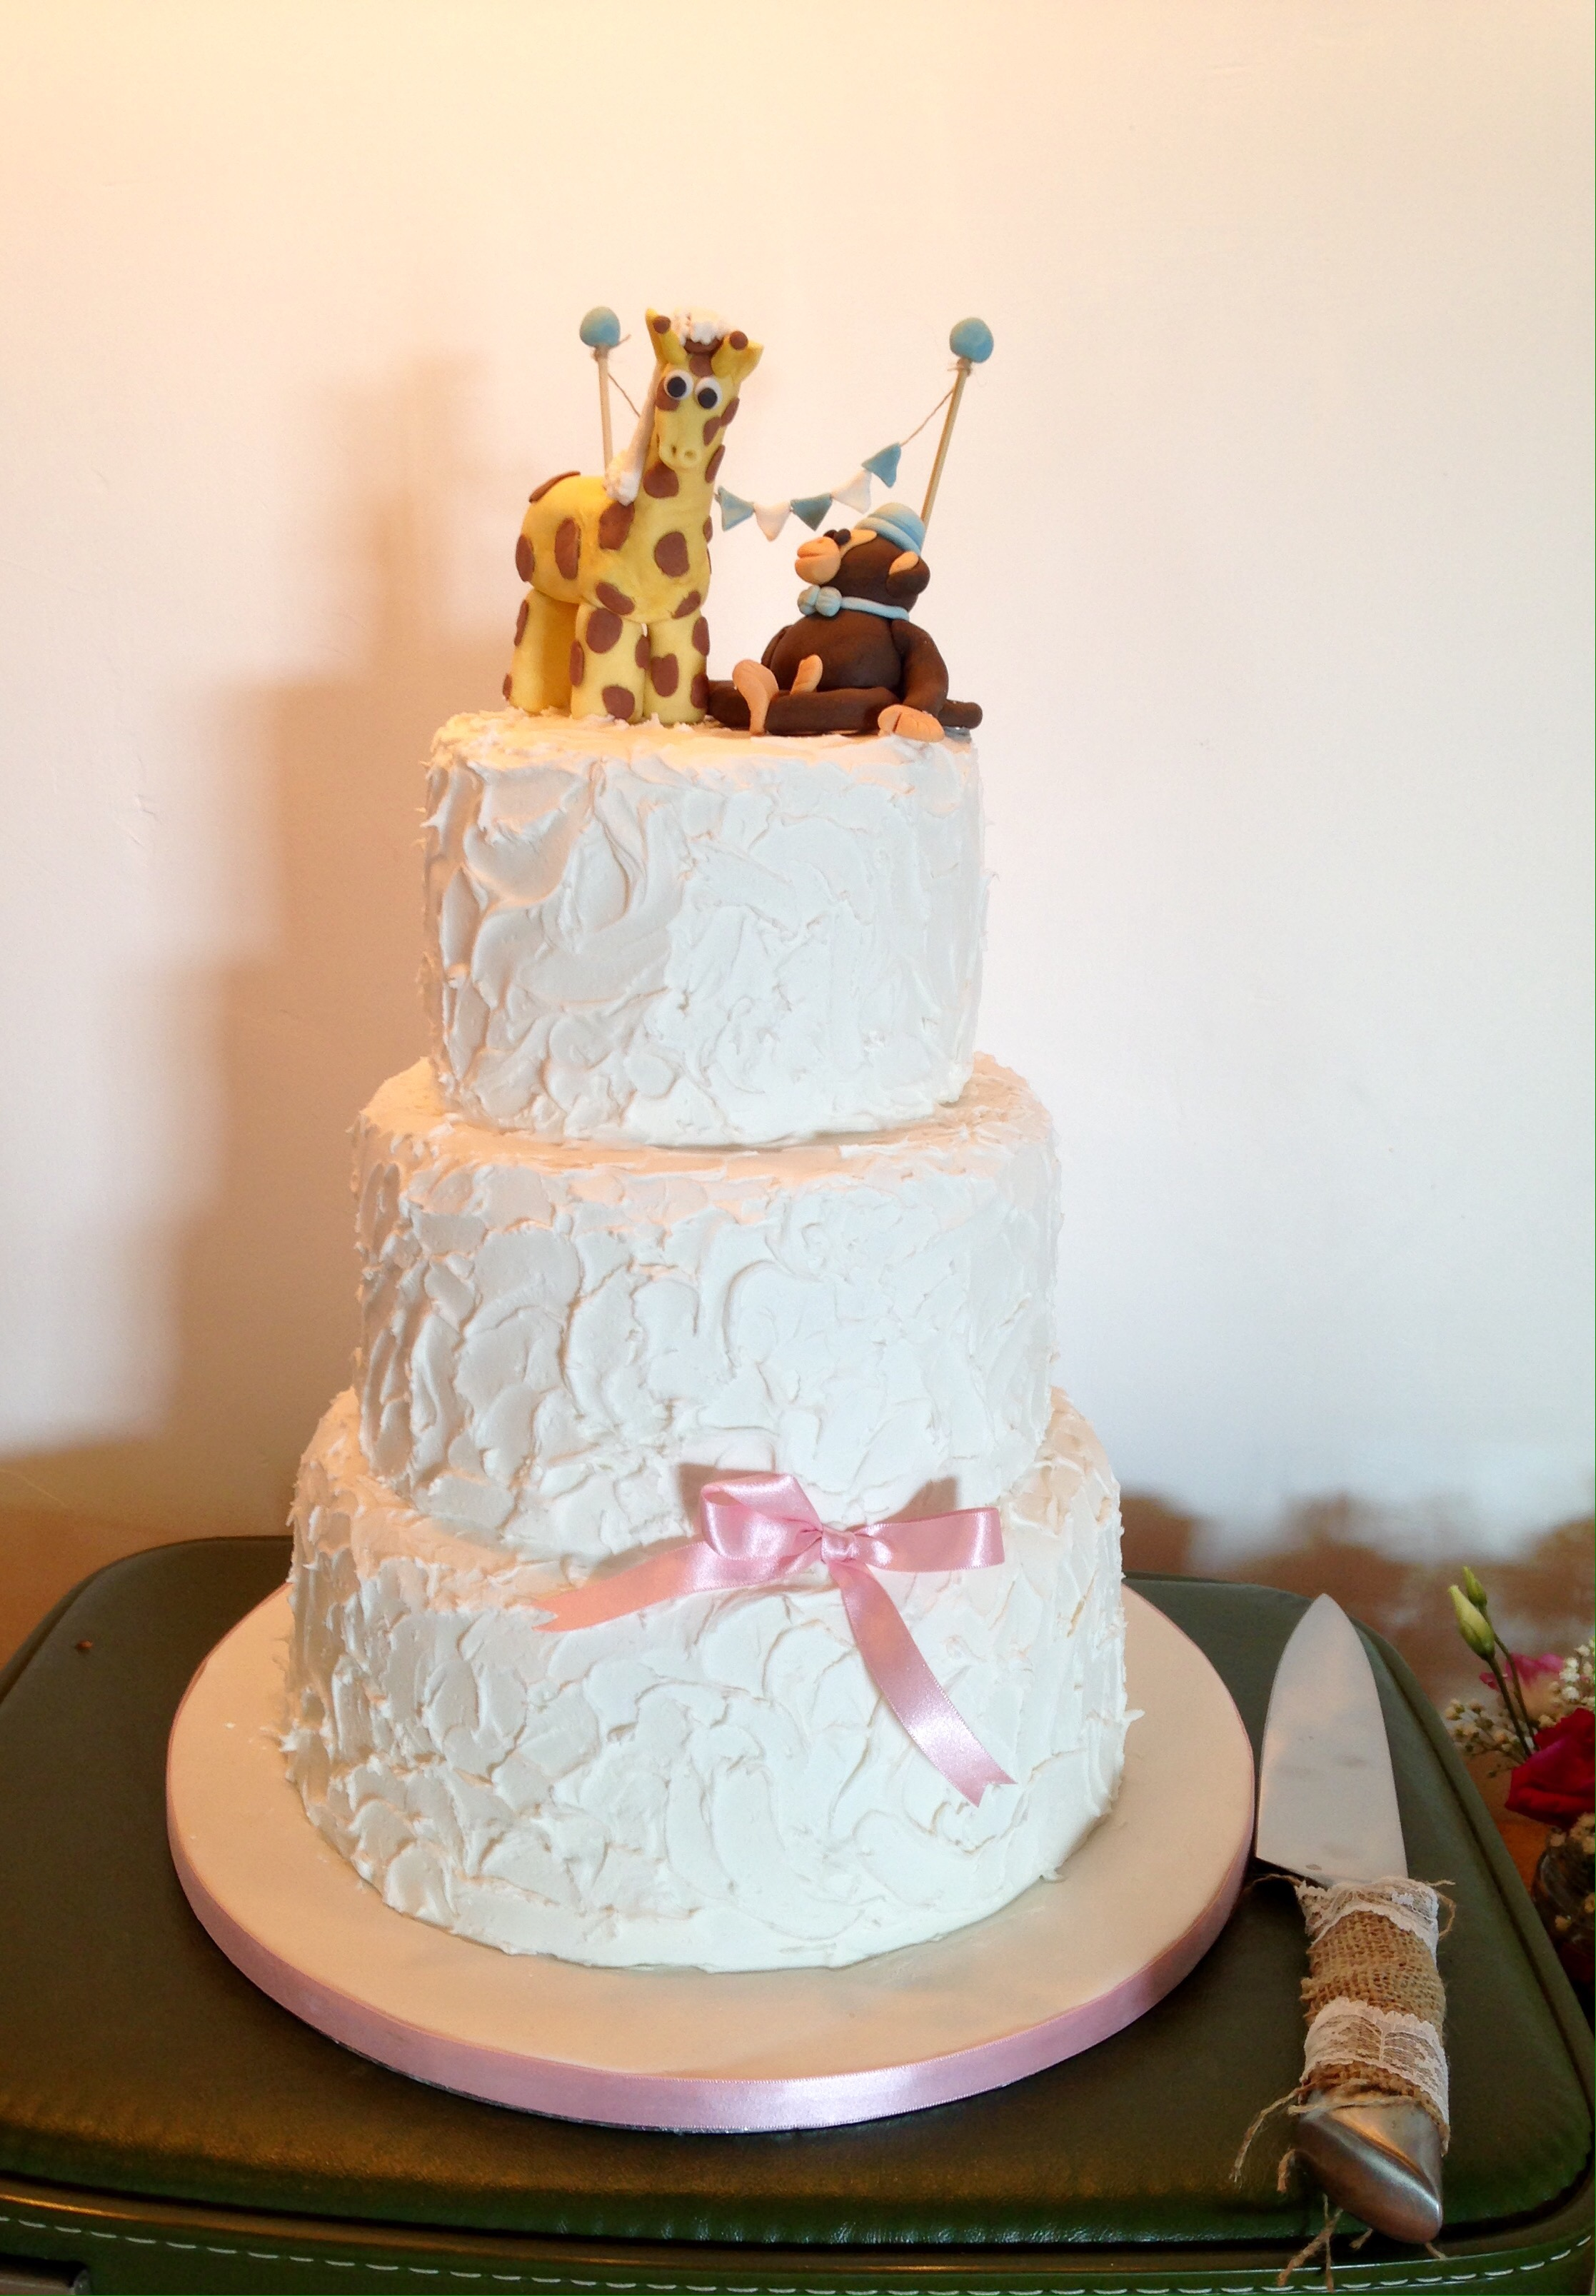 Wedding cakes | One Big Buttery Place